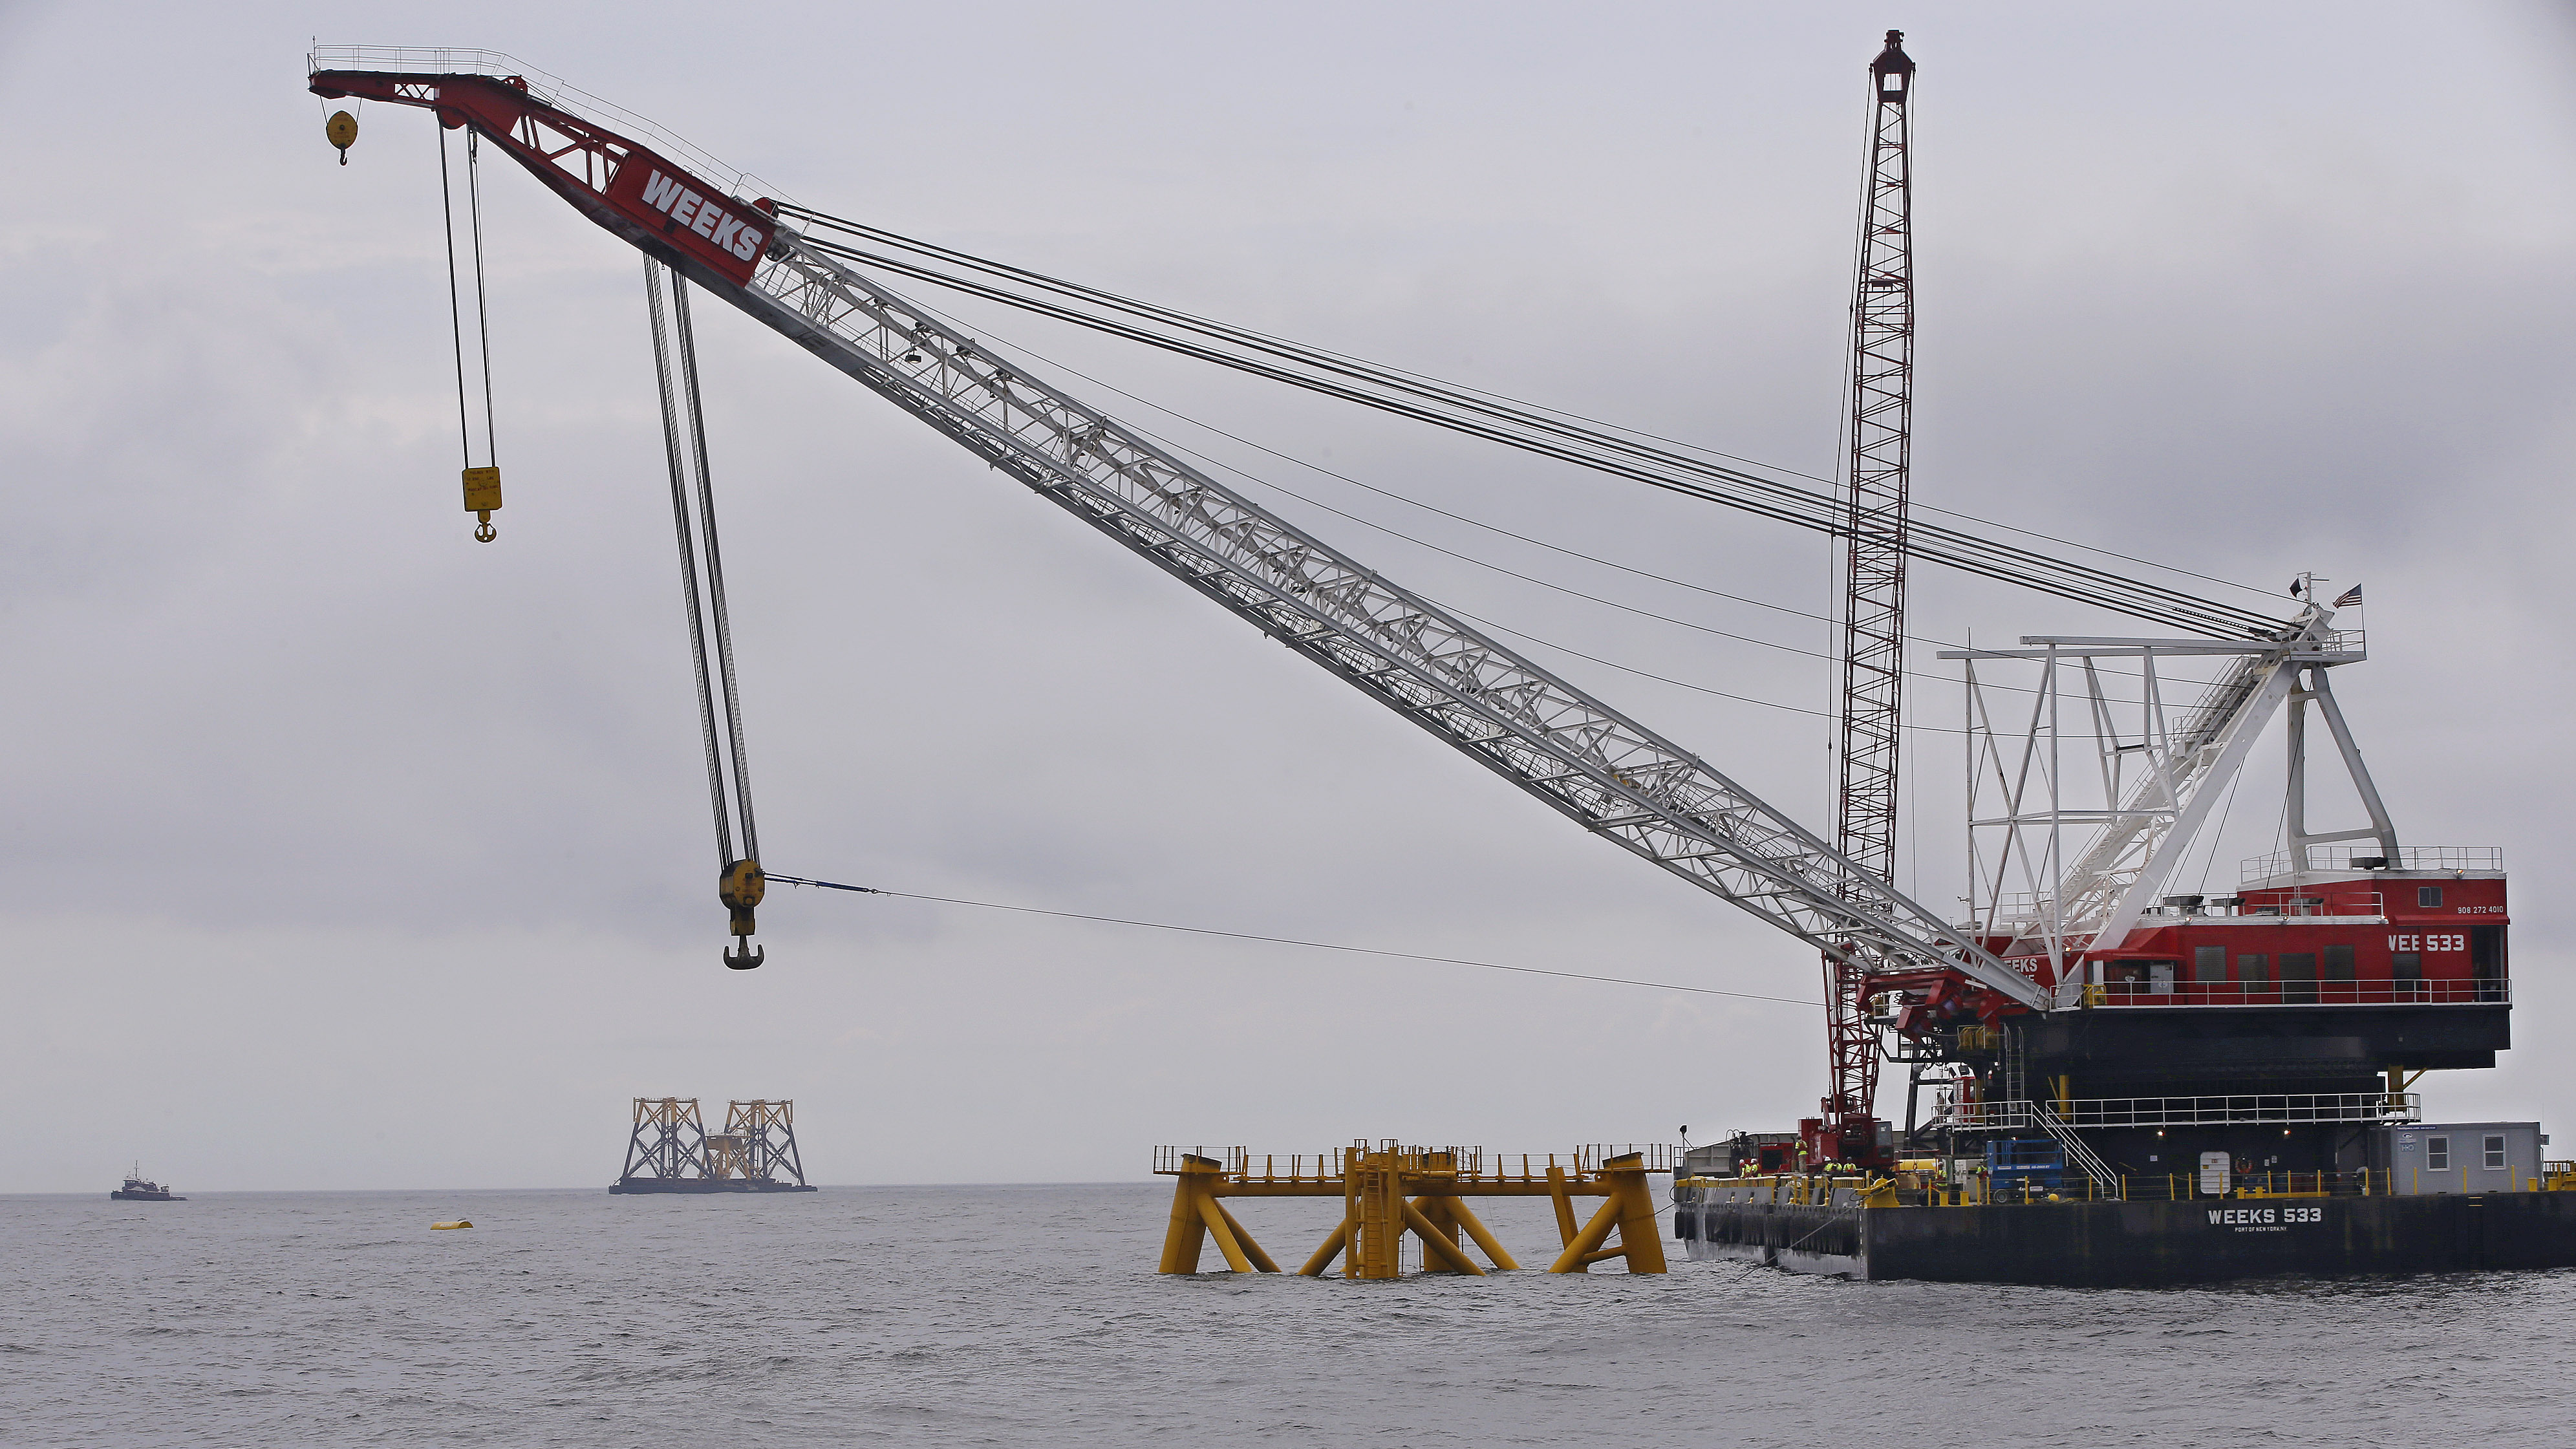 Winds Of Change? Rhode Island Hopes For First Offshore Wind Farm